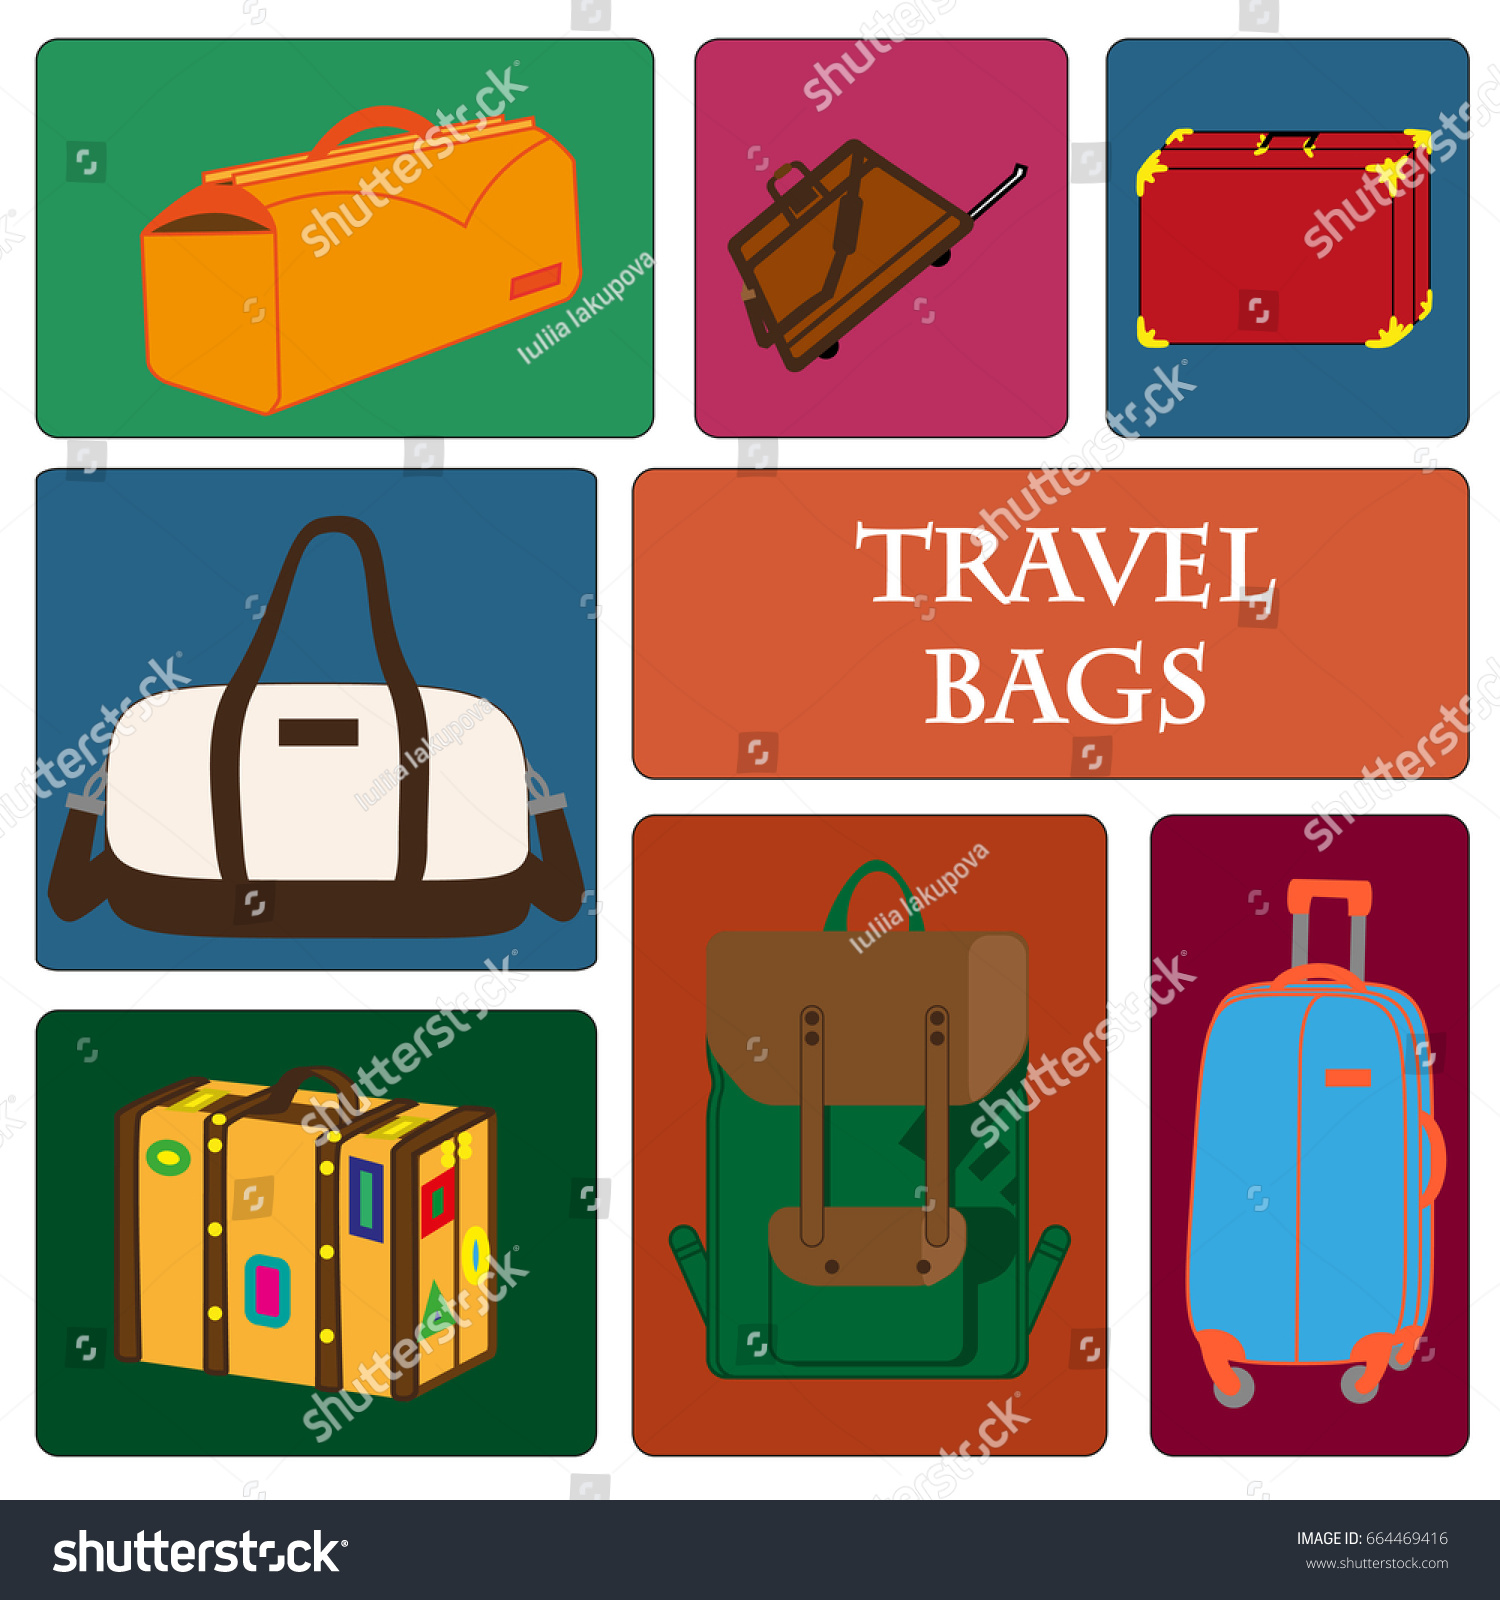 Bag Shops Collection Travel Bags Banner Poster Travel Stock Vector Royalty